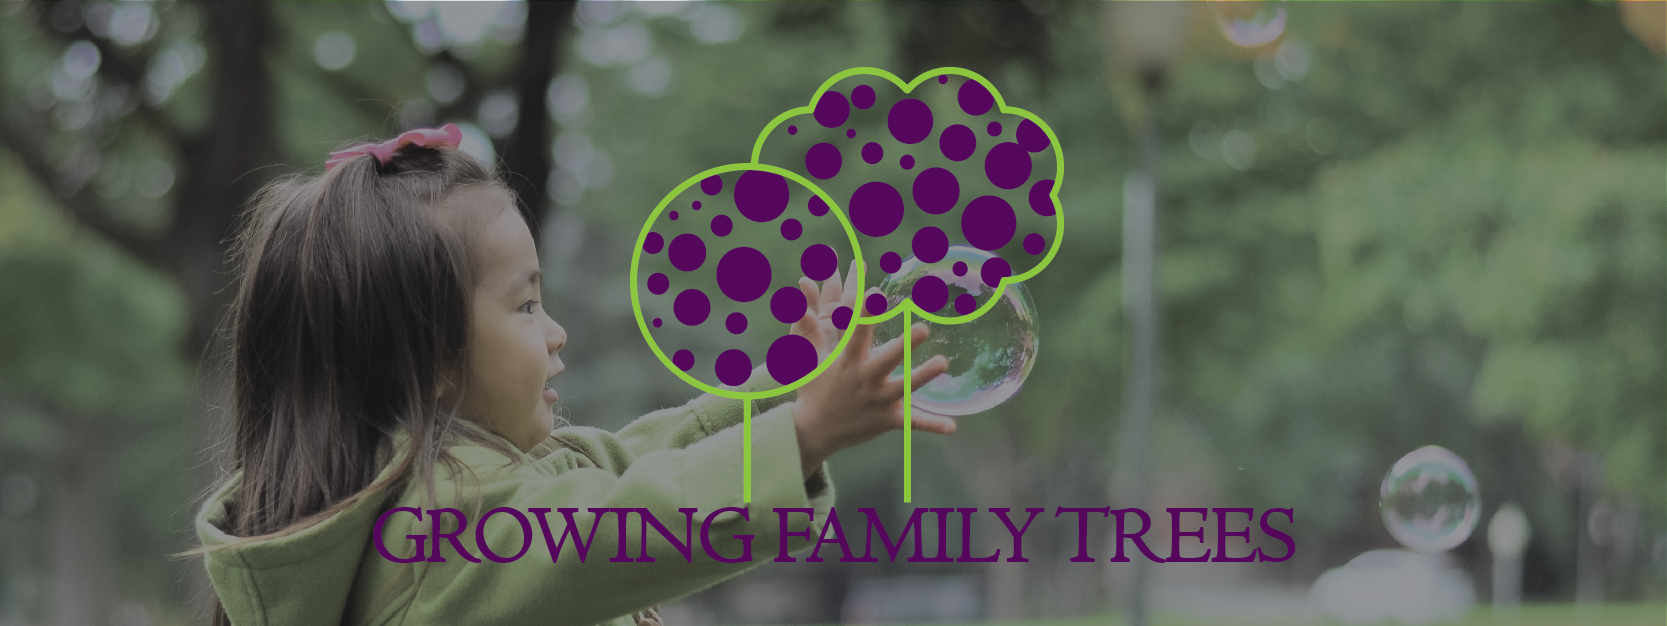 Growing Family Trees Cover-01.png